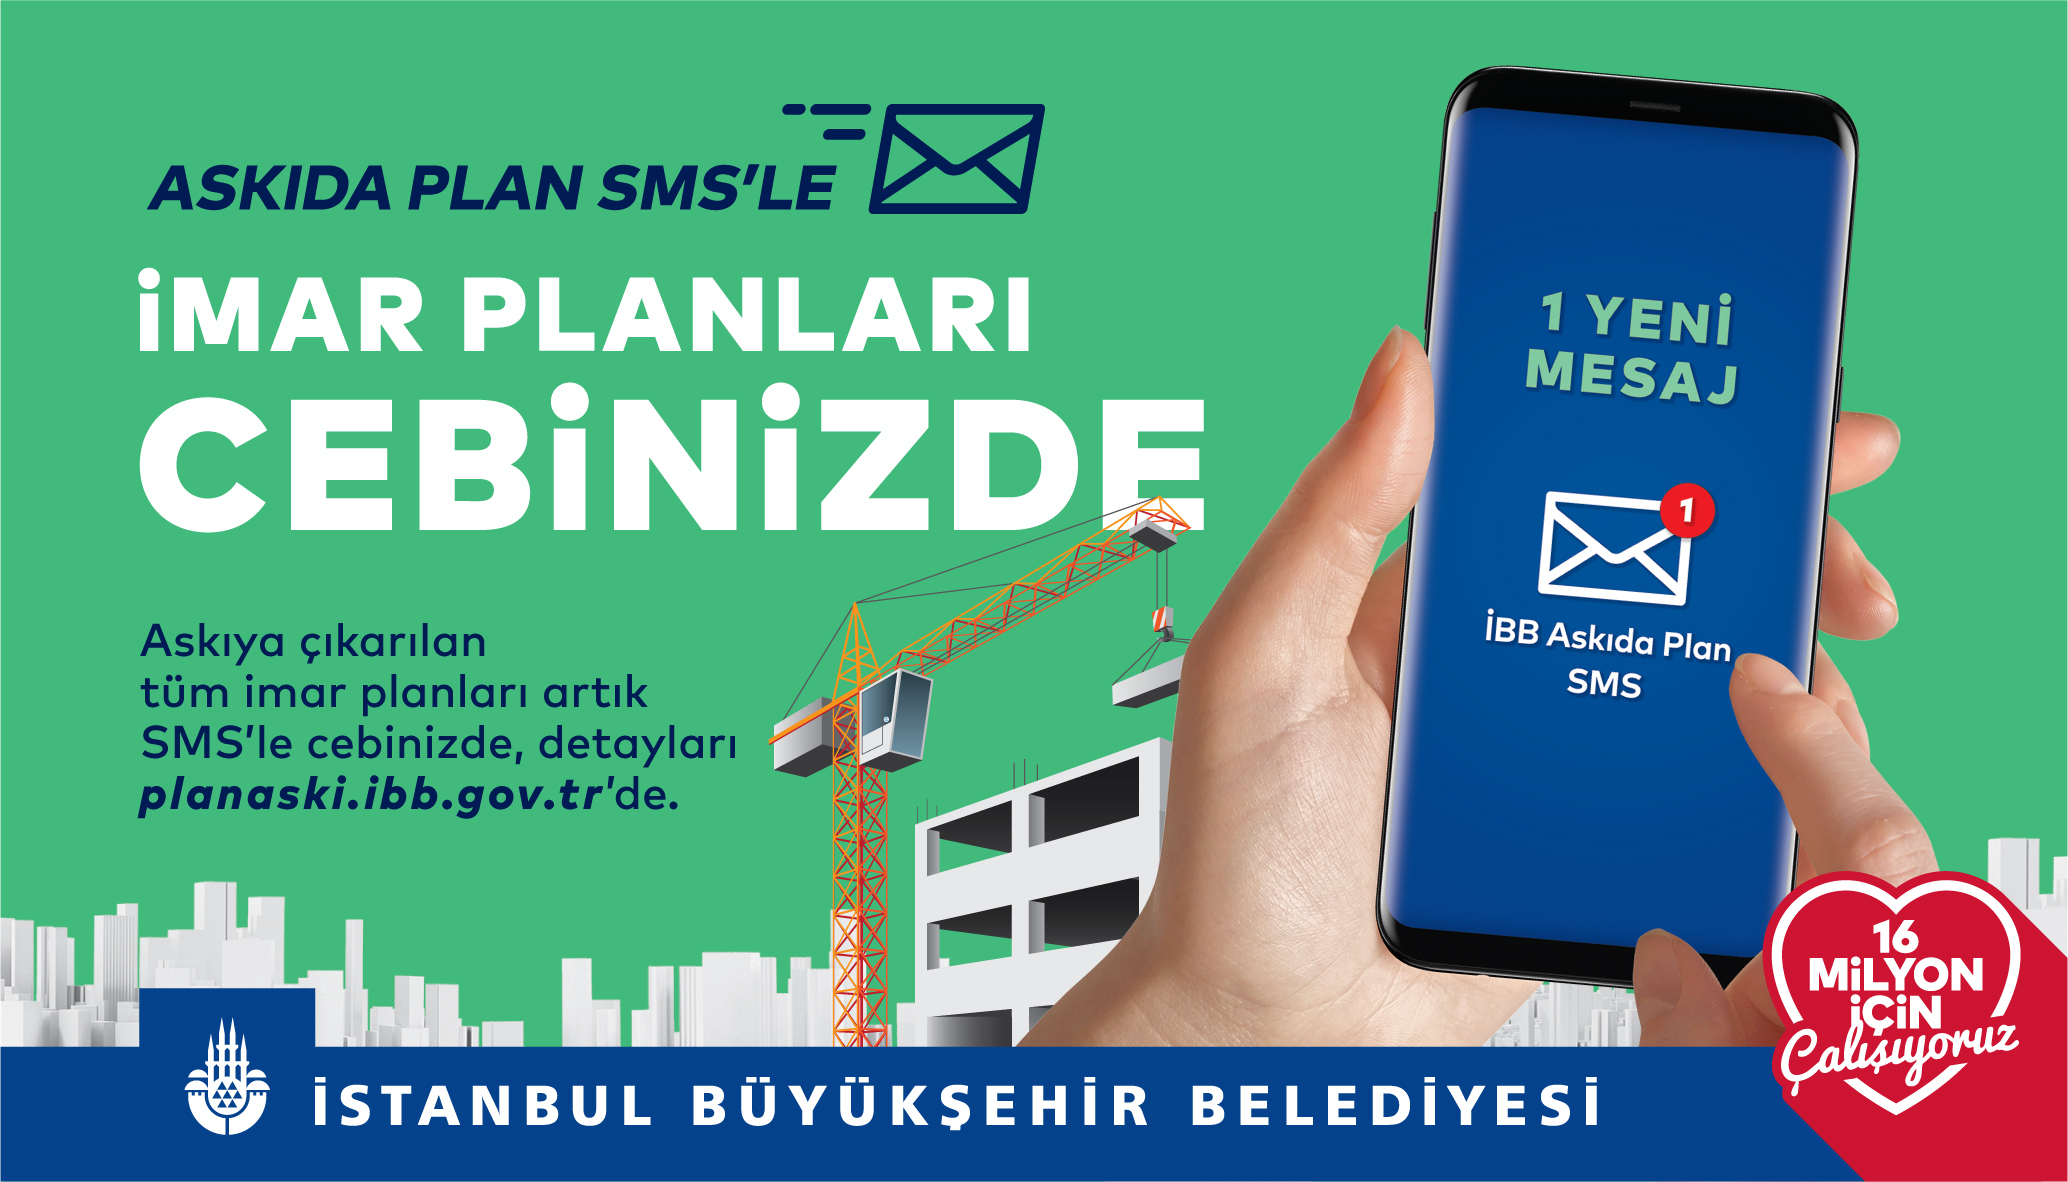 """""""ASKIDA PLAN SMS'LE"""" - Notifying citizens about the latest zoning plan and plan changes via SMS (Istambul)"""